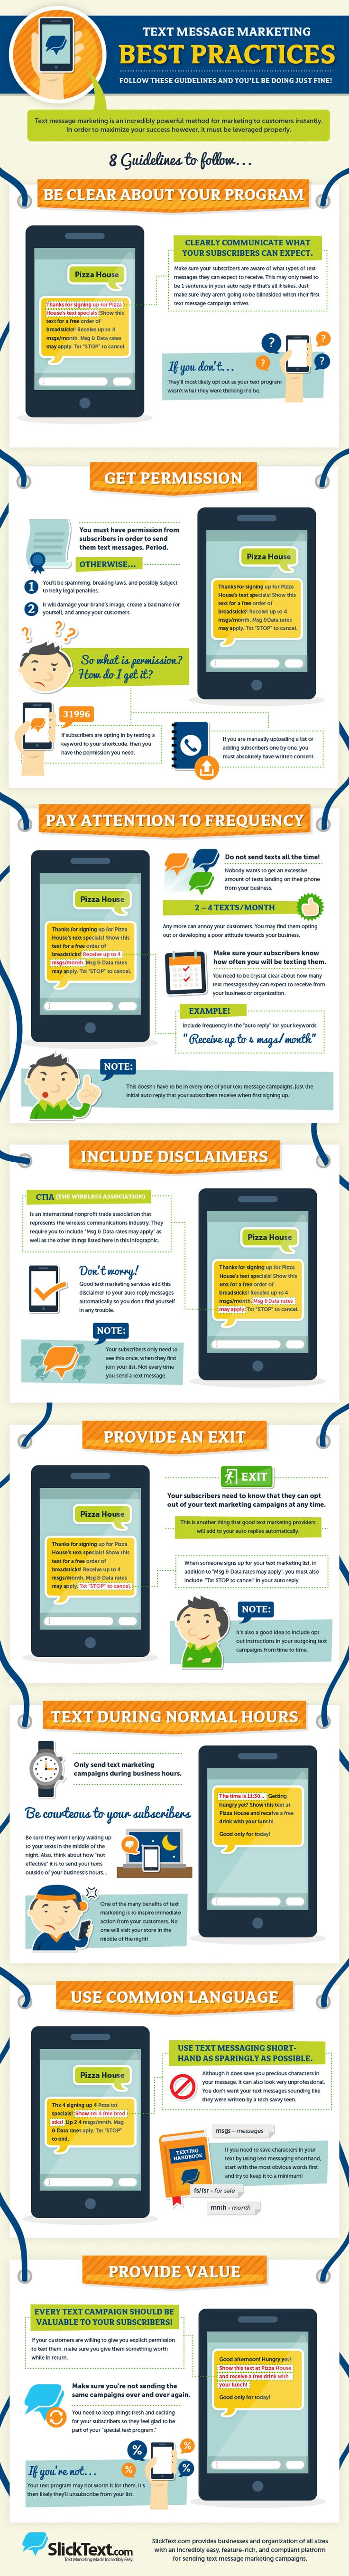 8 Text Message Marketing Best Practices (Infographic)